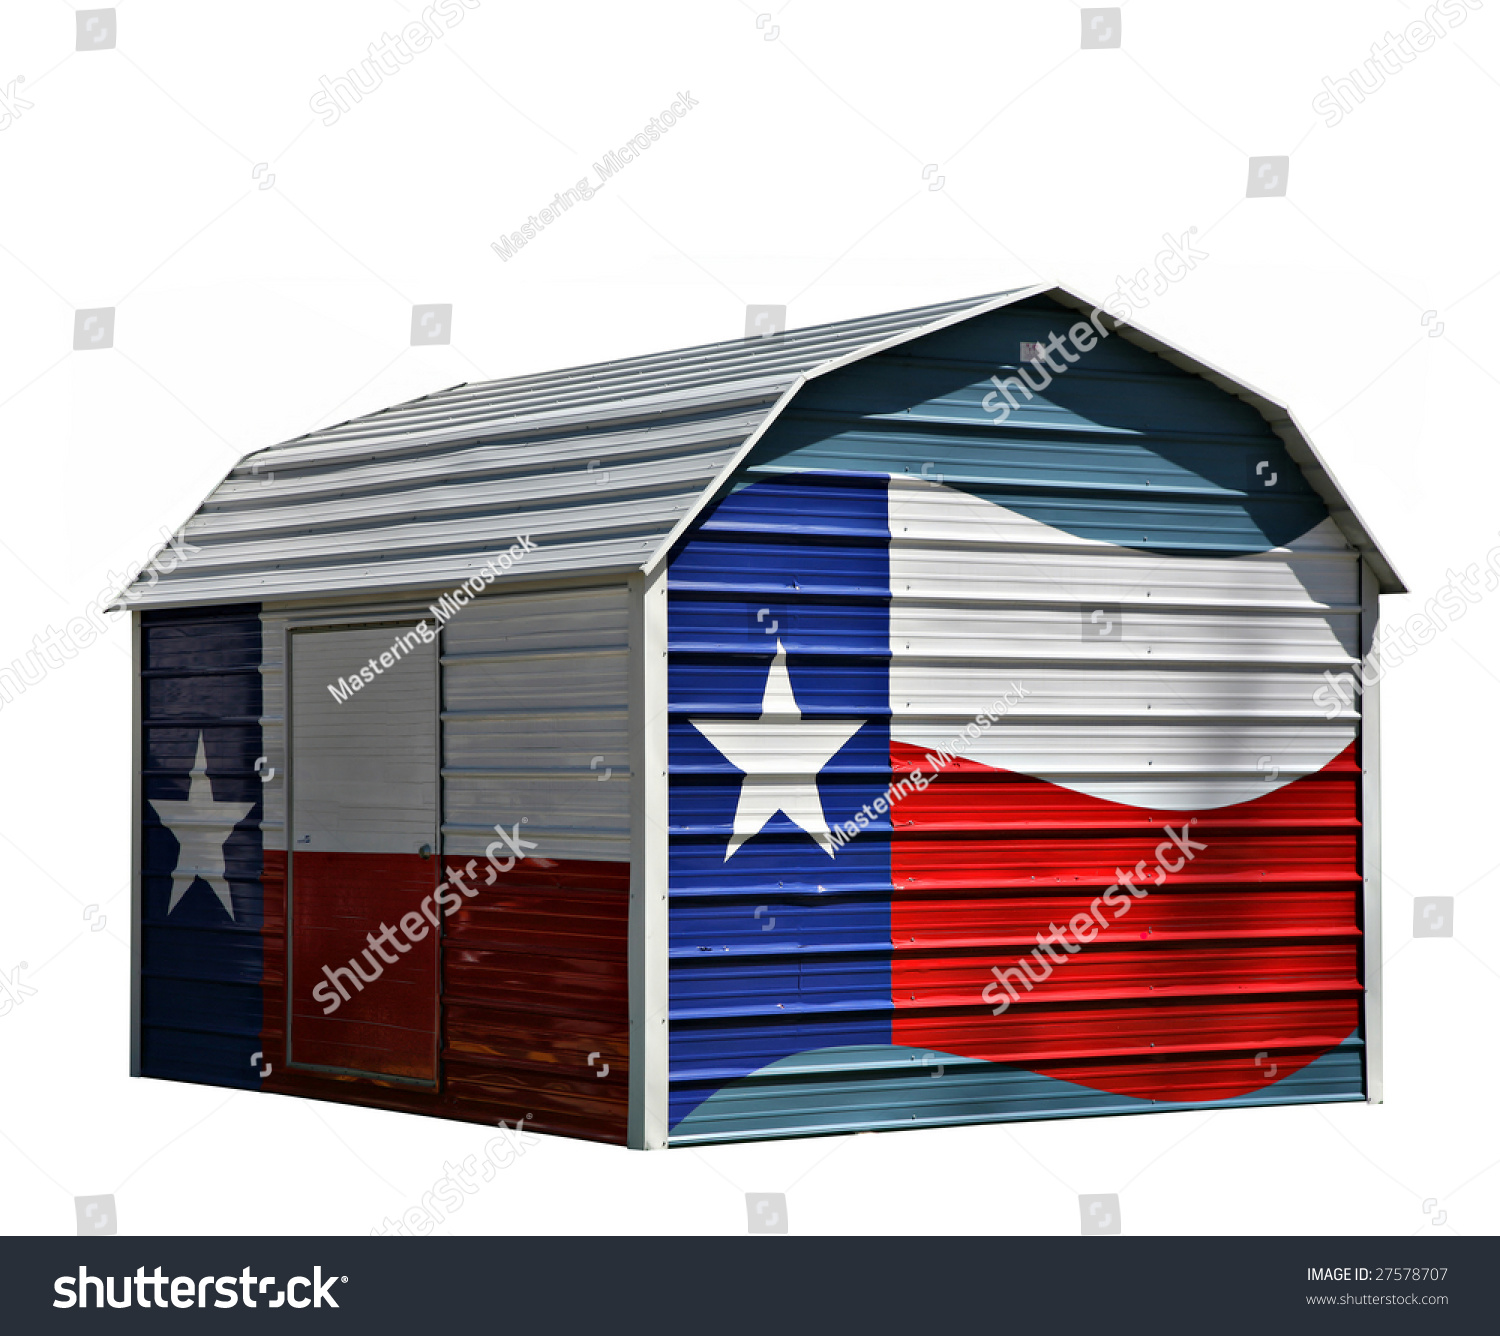 Metal Corrugated Storage Shed With Texas Lone Star Blue